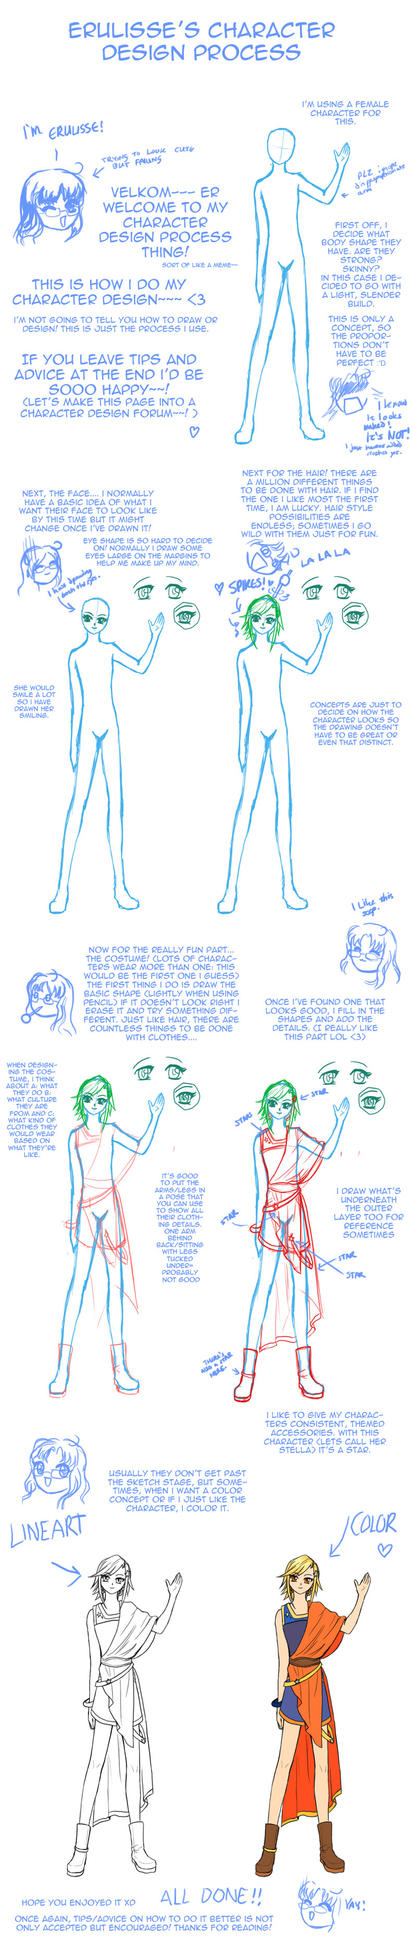 The Character Design Process : Character design process idk by erulisse on deviantart